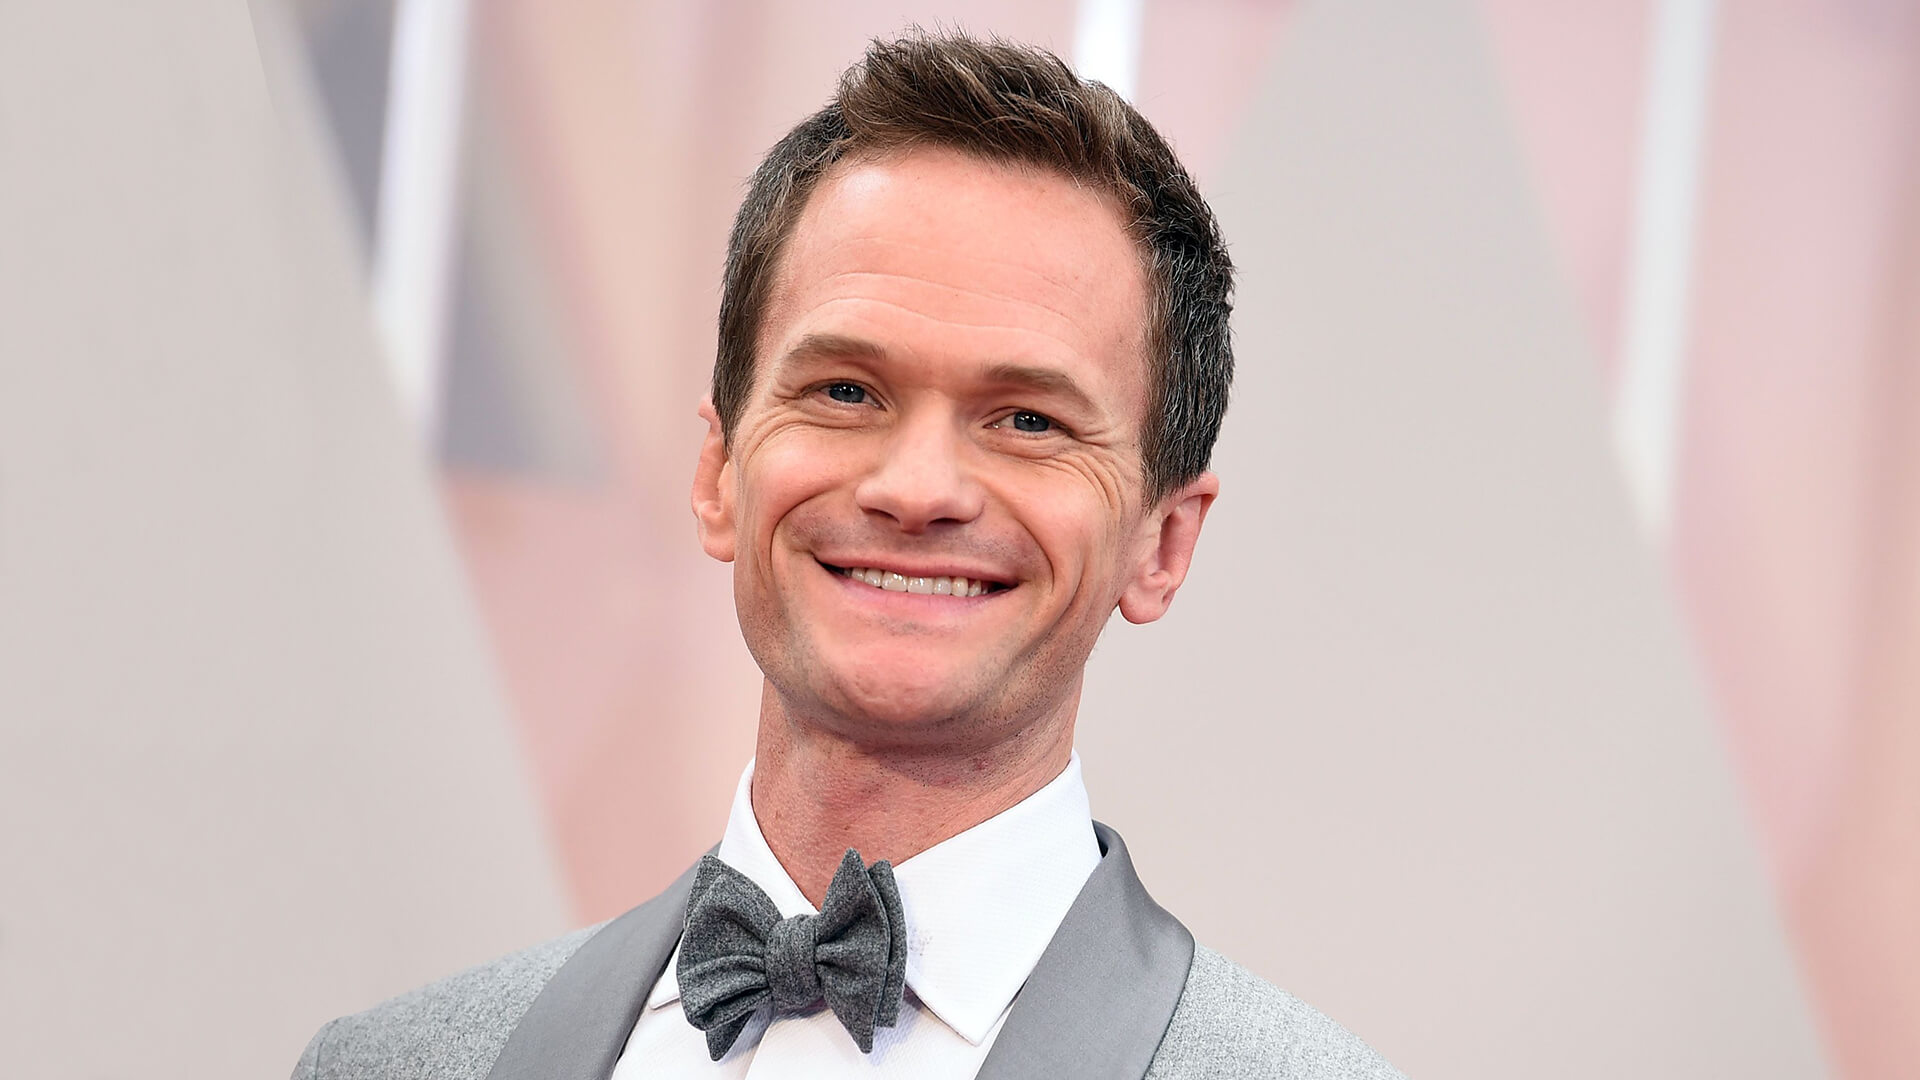 Neil Patrick Harris Net Worth: Multimillions From TV, Film and Books